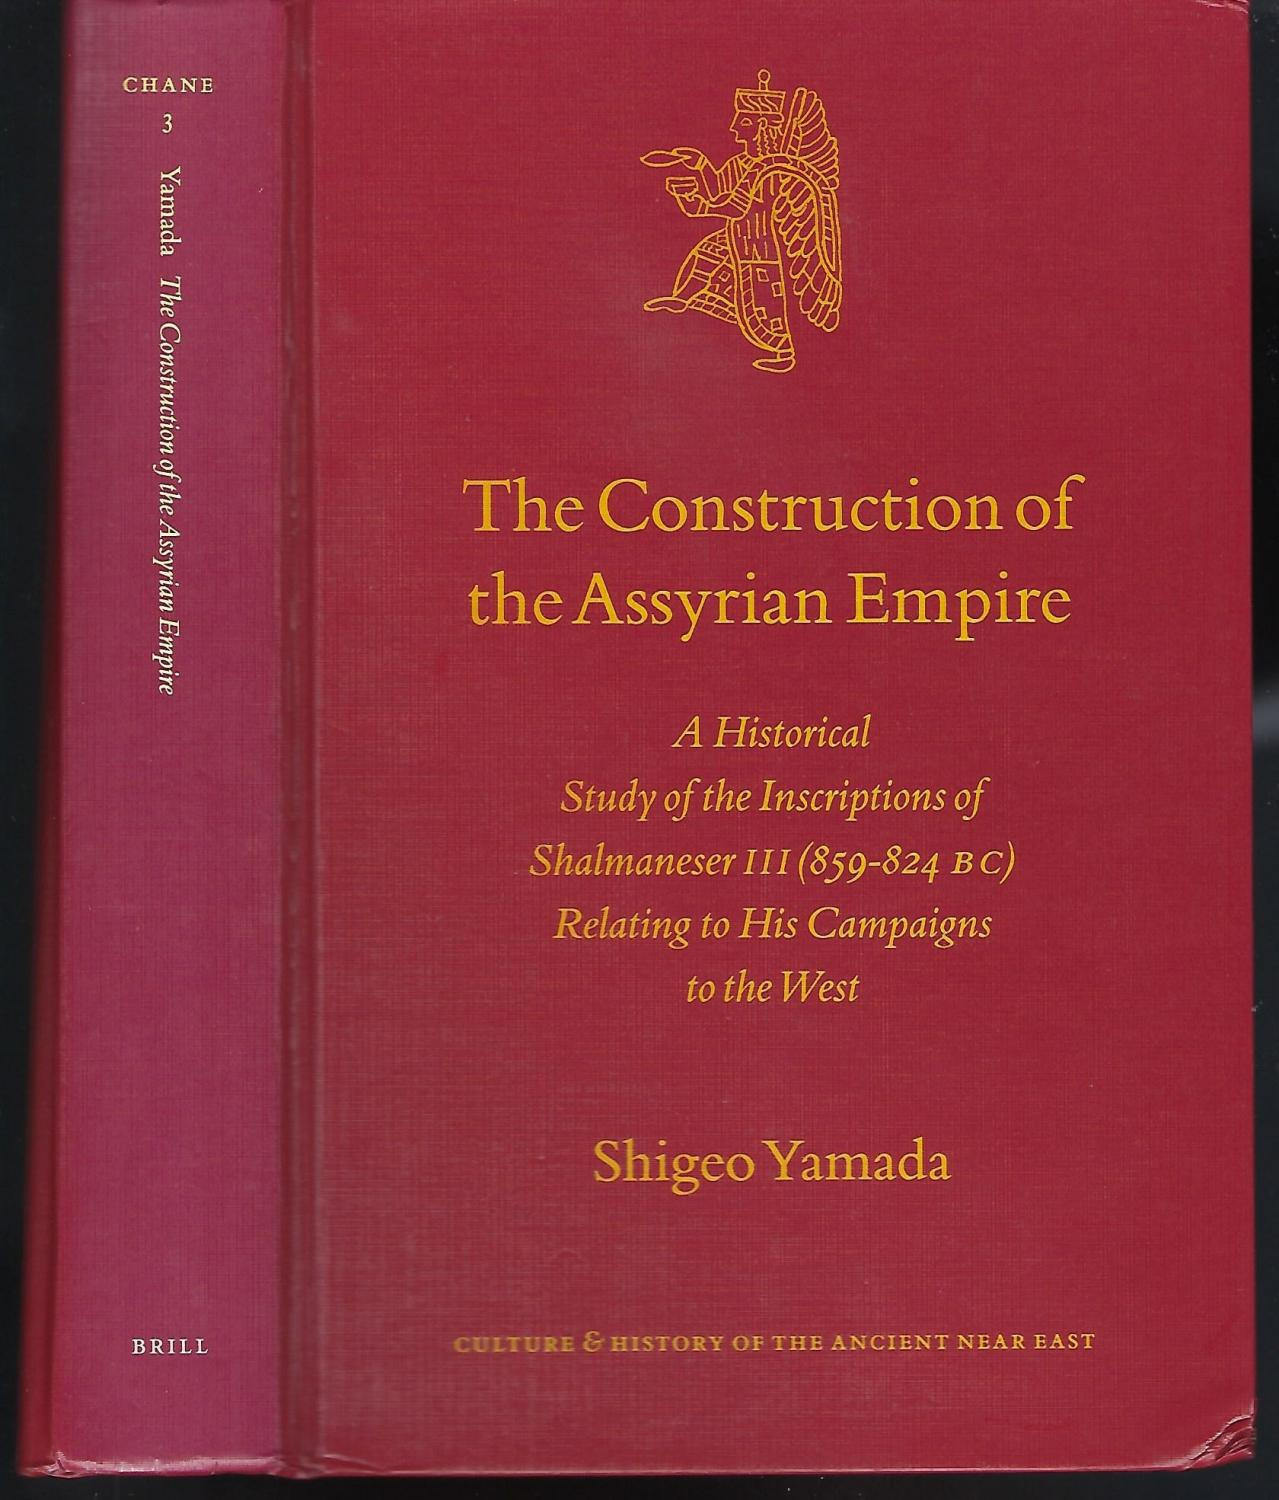 The Construction of the Assyrian Empire: A Historical Study of the Inscriptions of Shalmanesar III Relating to His Campaigns in the West (Culture and History of the Ancient Near East) - Yamada, Sadami